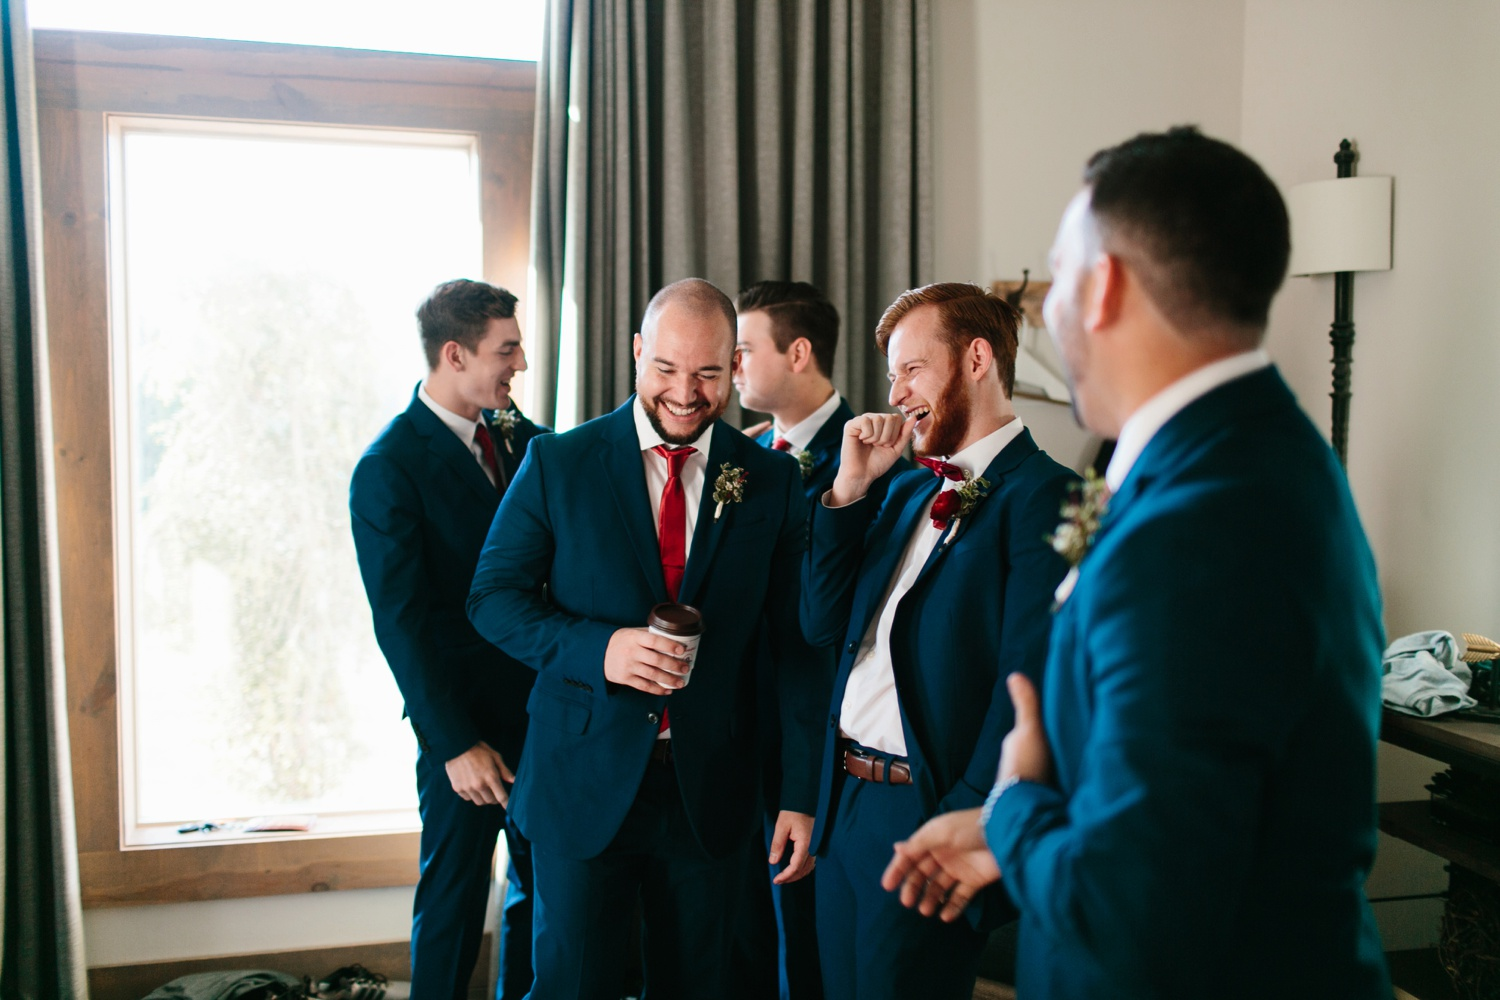 Grant + Lysette | a vibrant, deep burgundy and navy, and mixed metals wedding at Hidden Pines Chapel by North Texas Wedding Photographer Rachel Meagan Photography 014